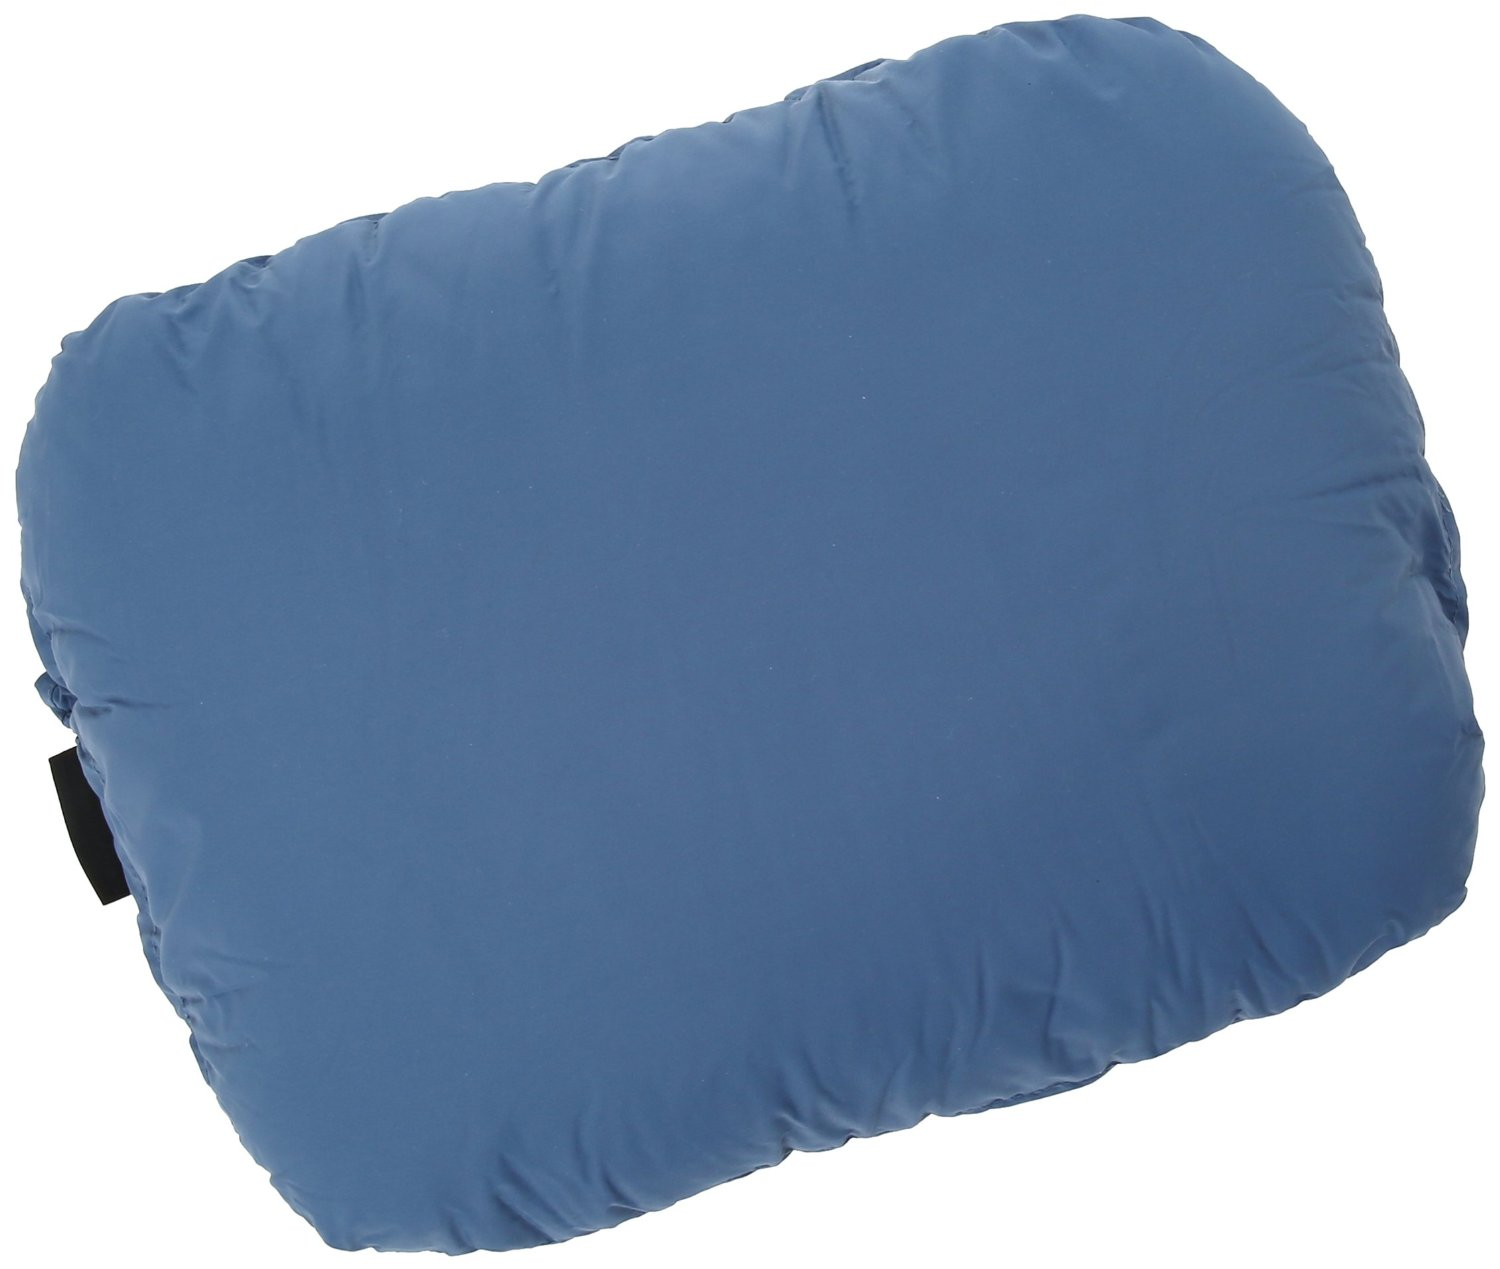 down-filled pillow